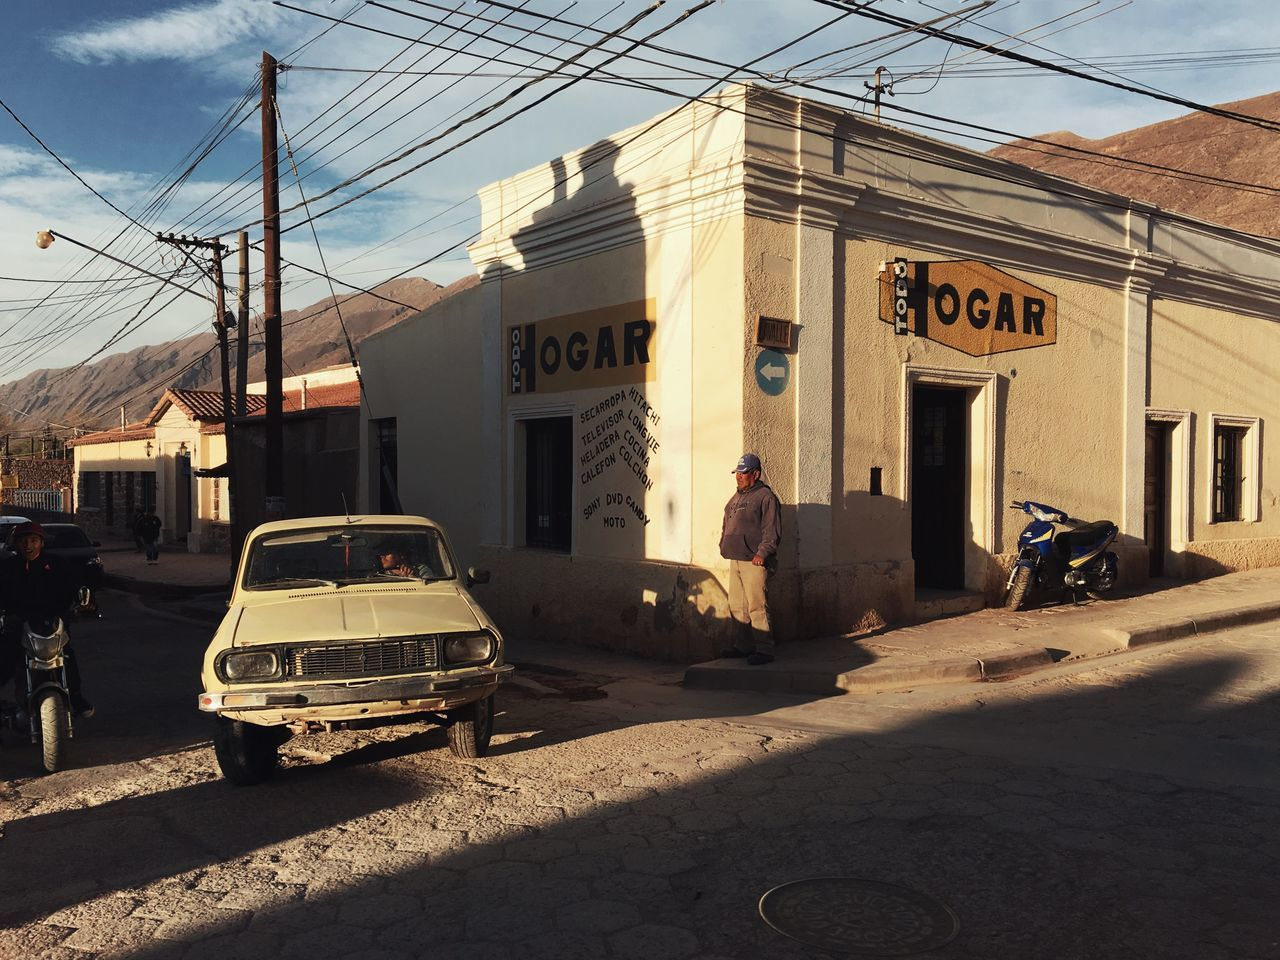 Architecture Argentina Building Exterior Built Structure Car Day Hogar Mode Of Transport Old Car Outdoors Road Road Trip Shadow Snap A Stranger Street Sunset The Drive Tilcara Transportation ShotoniPhone6s Mobilephotography IPhoneography